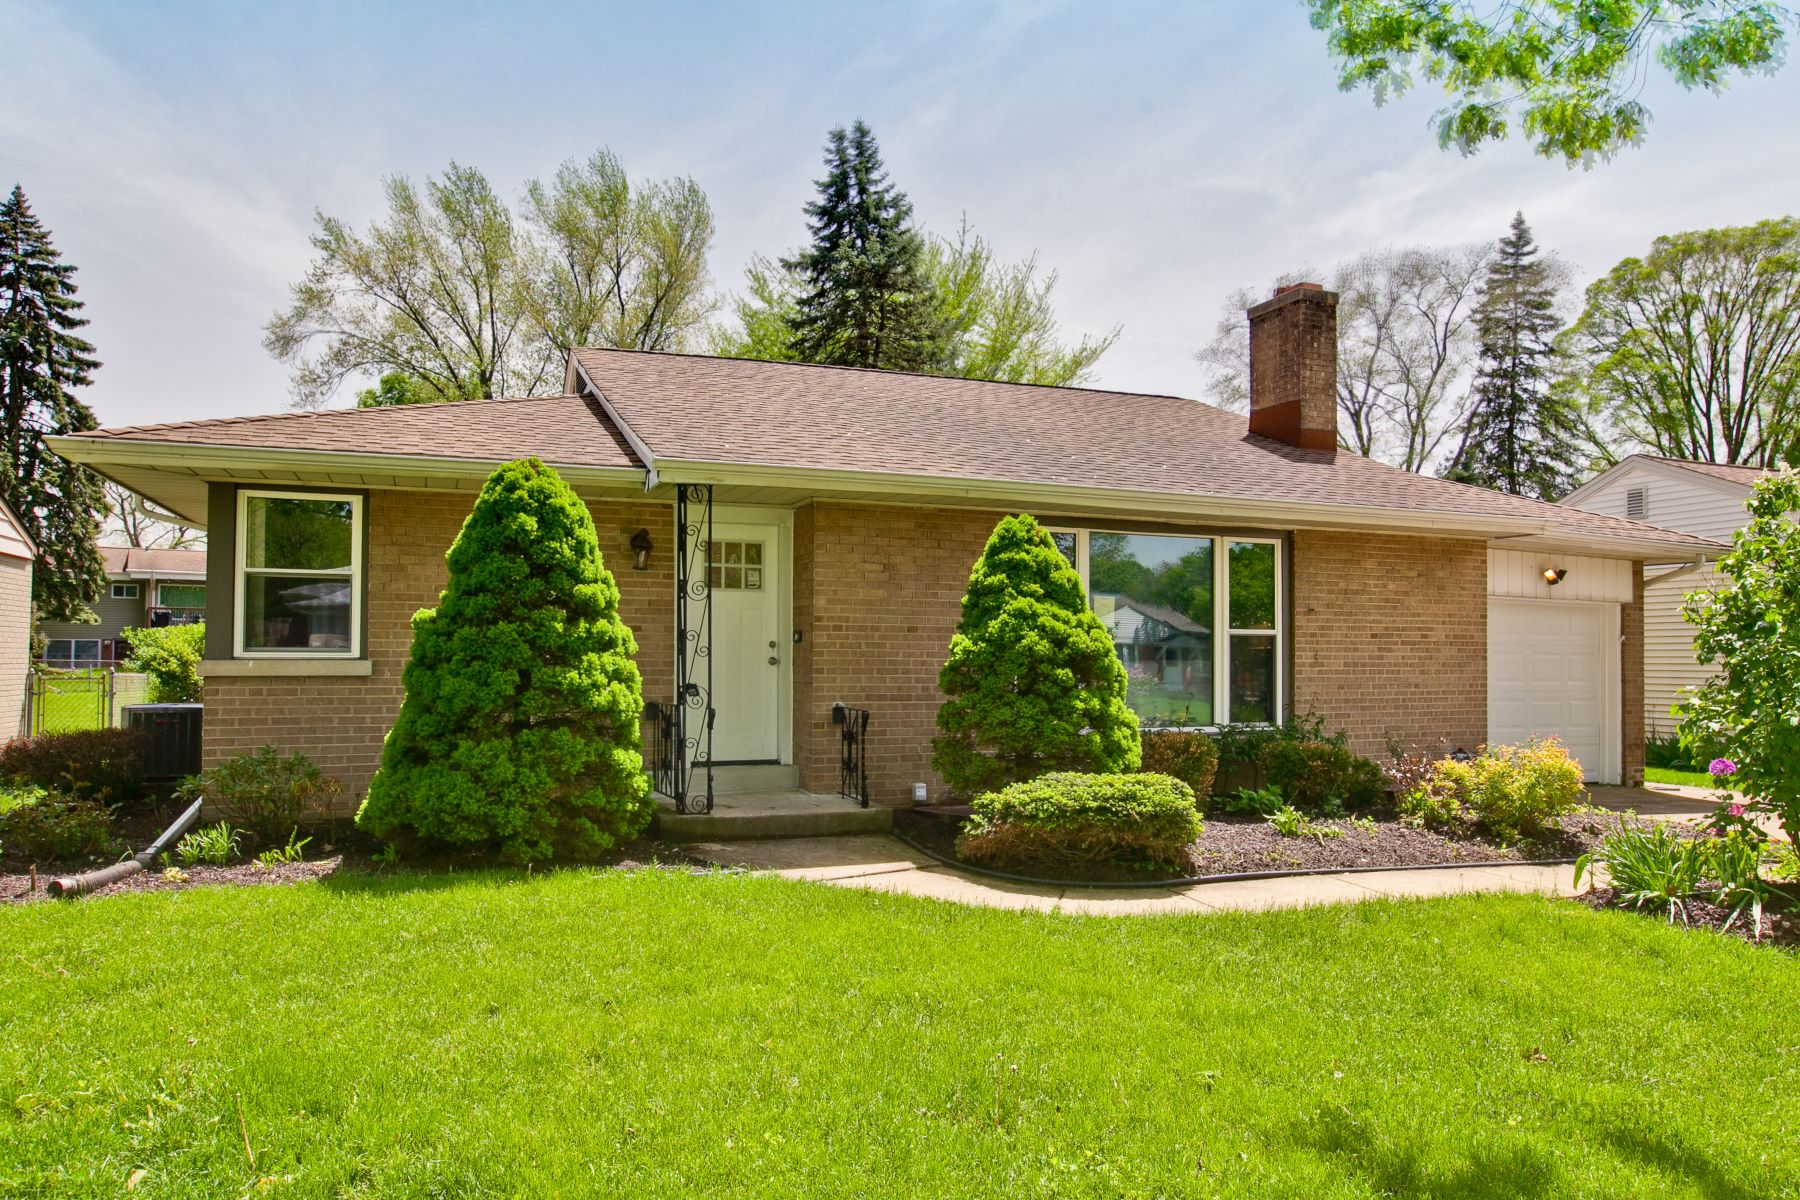 Single Family Homes for Active at Updated Brick Mid Century 143 W Washington Boulevard Lombard, Illinois 60148 United States